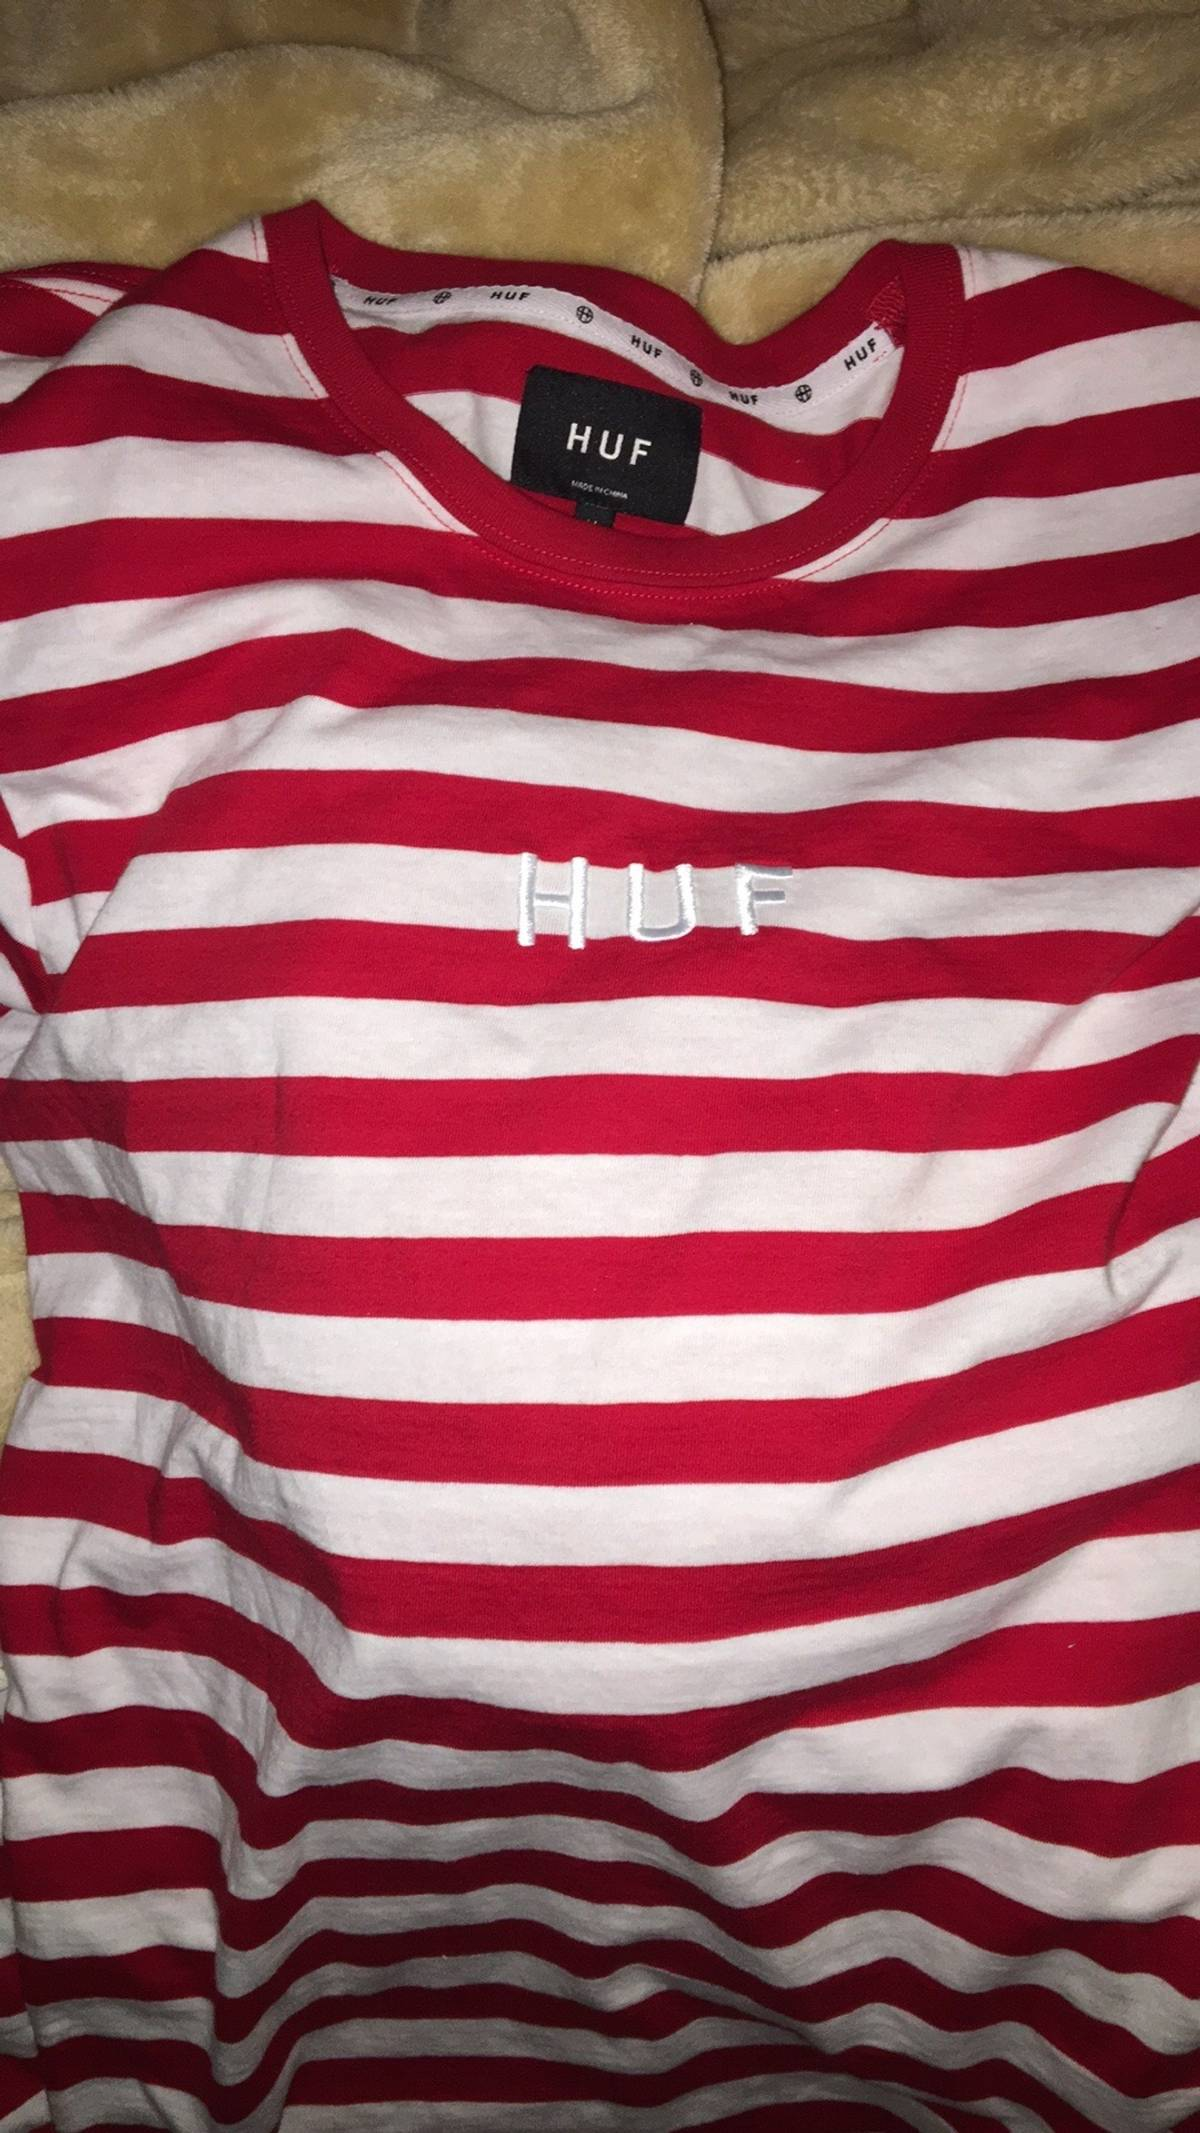 9e86b2dbcc Huf Red Striped Longsleeve | Grailed